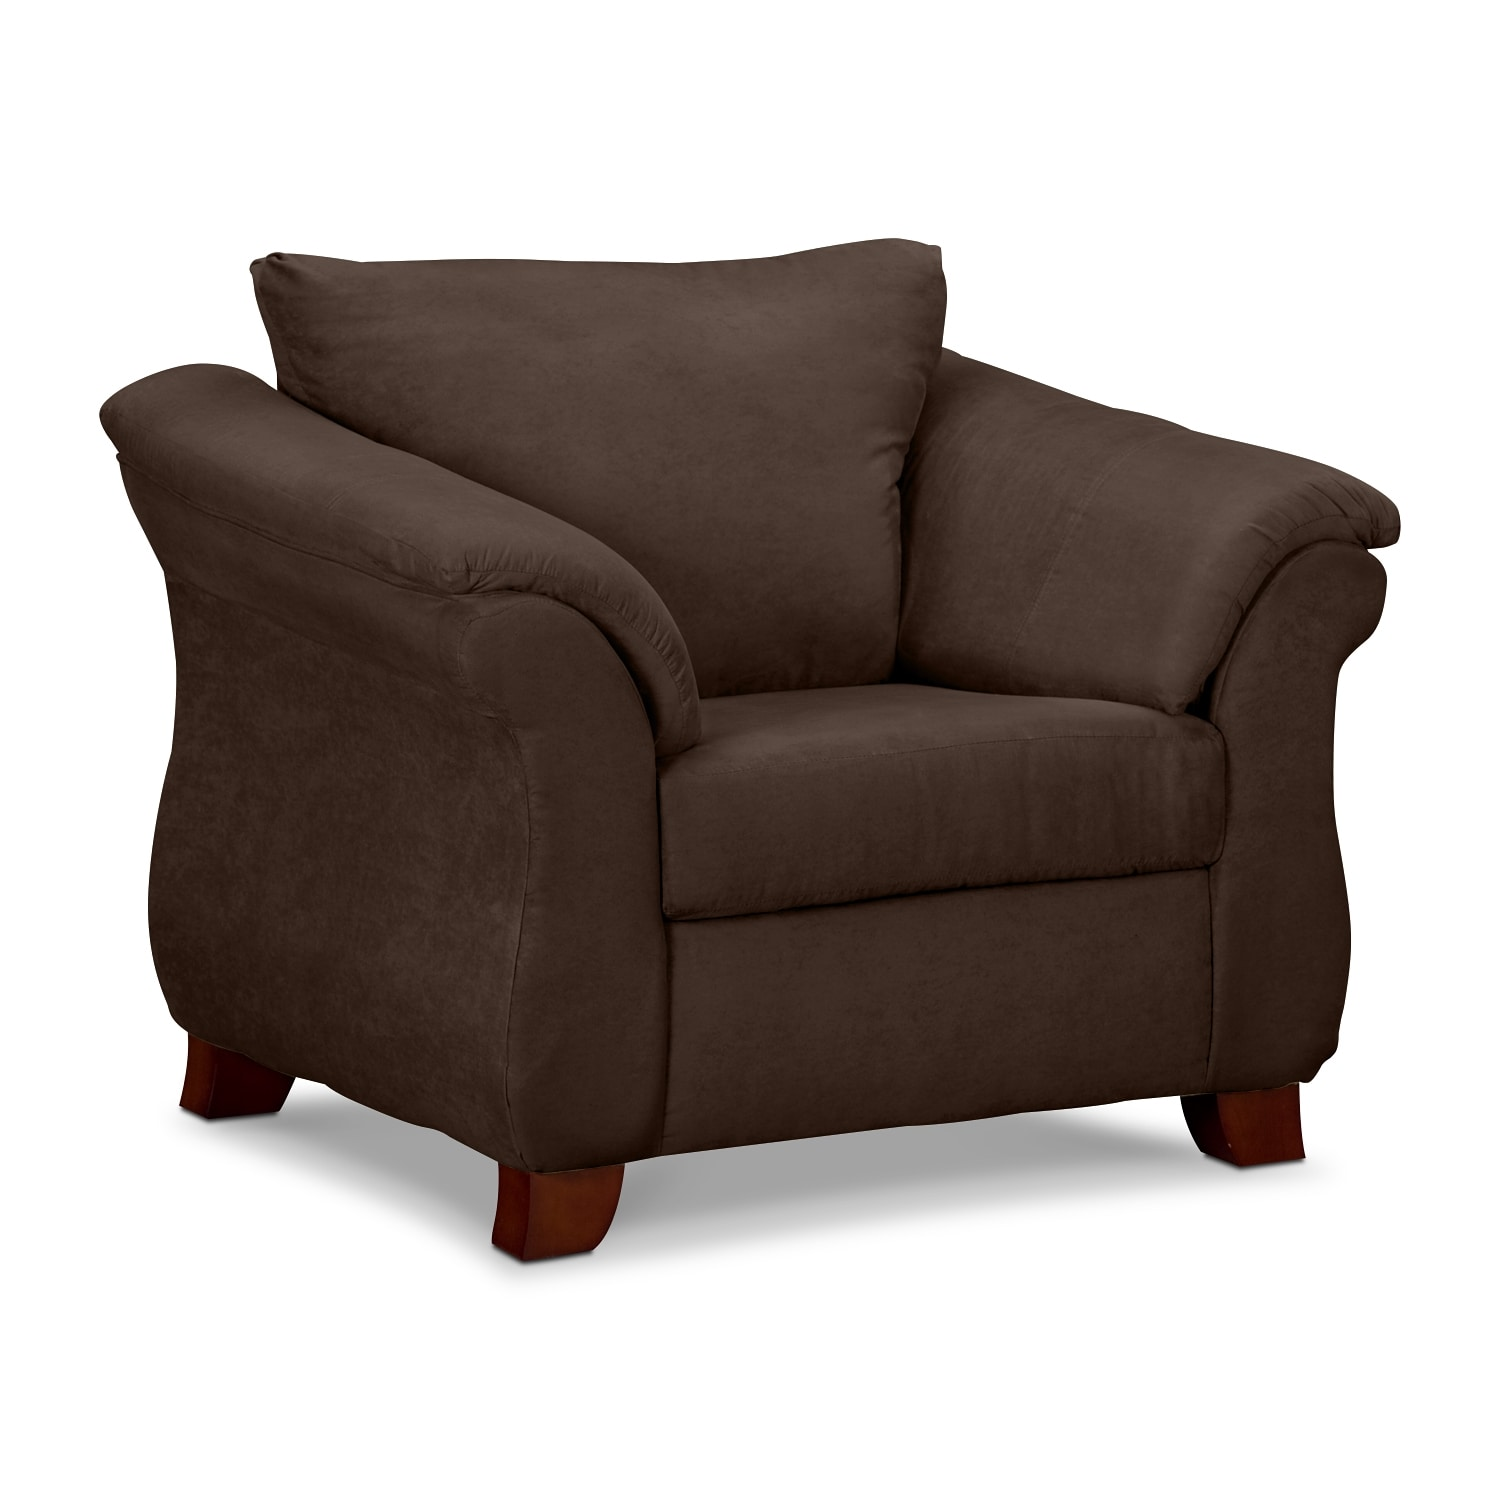 Living Room Furniture - Perry Chocolate Chair